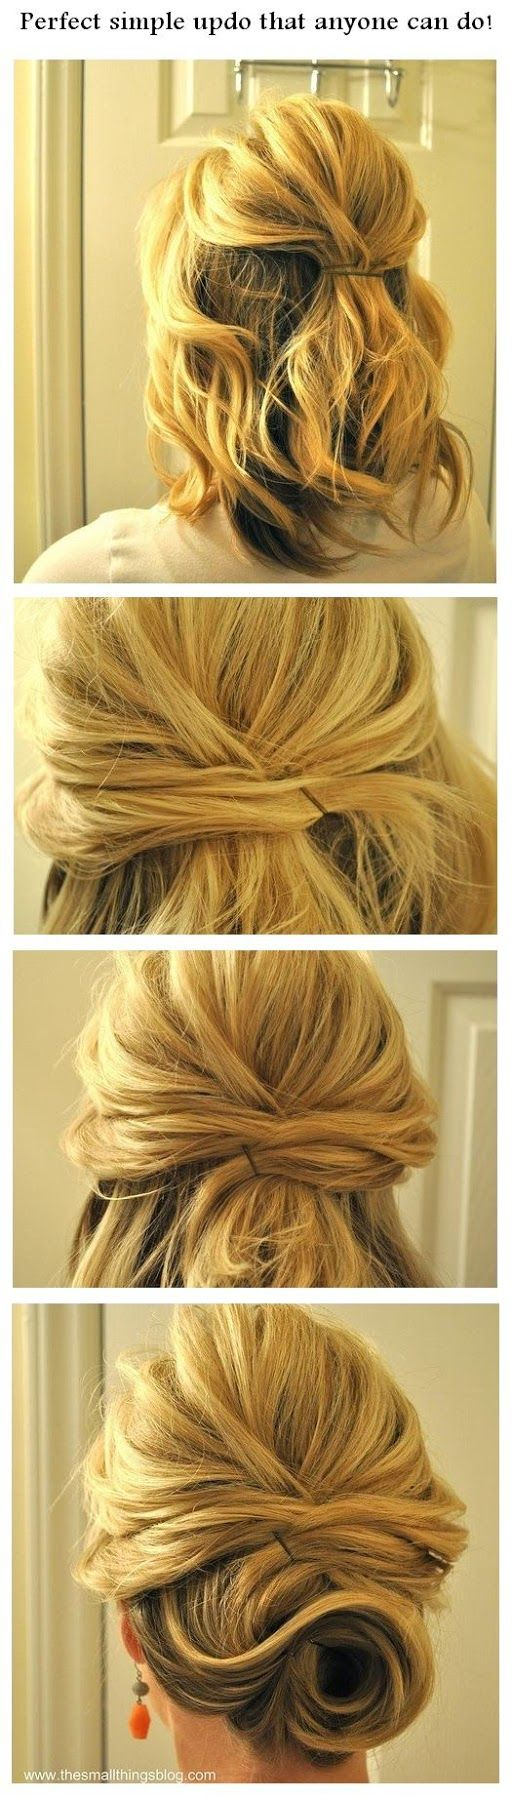 Perfect simple updo that anyone can do hairstyles tutorial easy